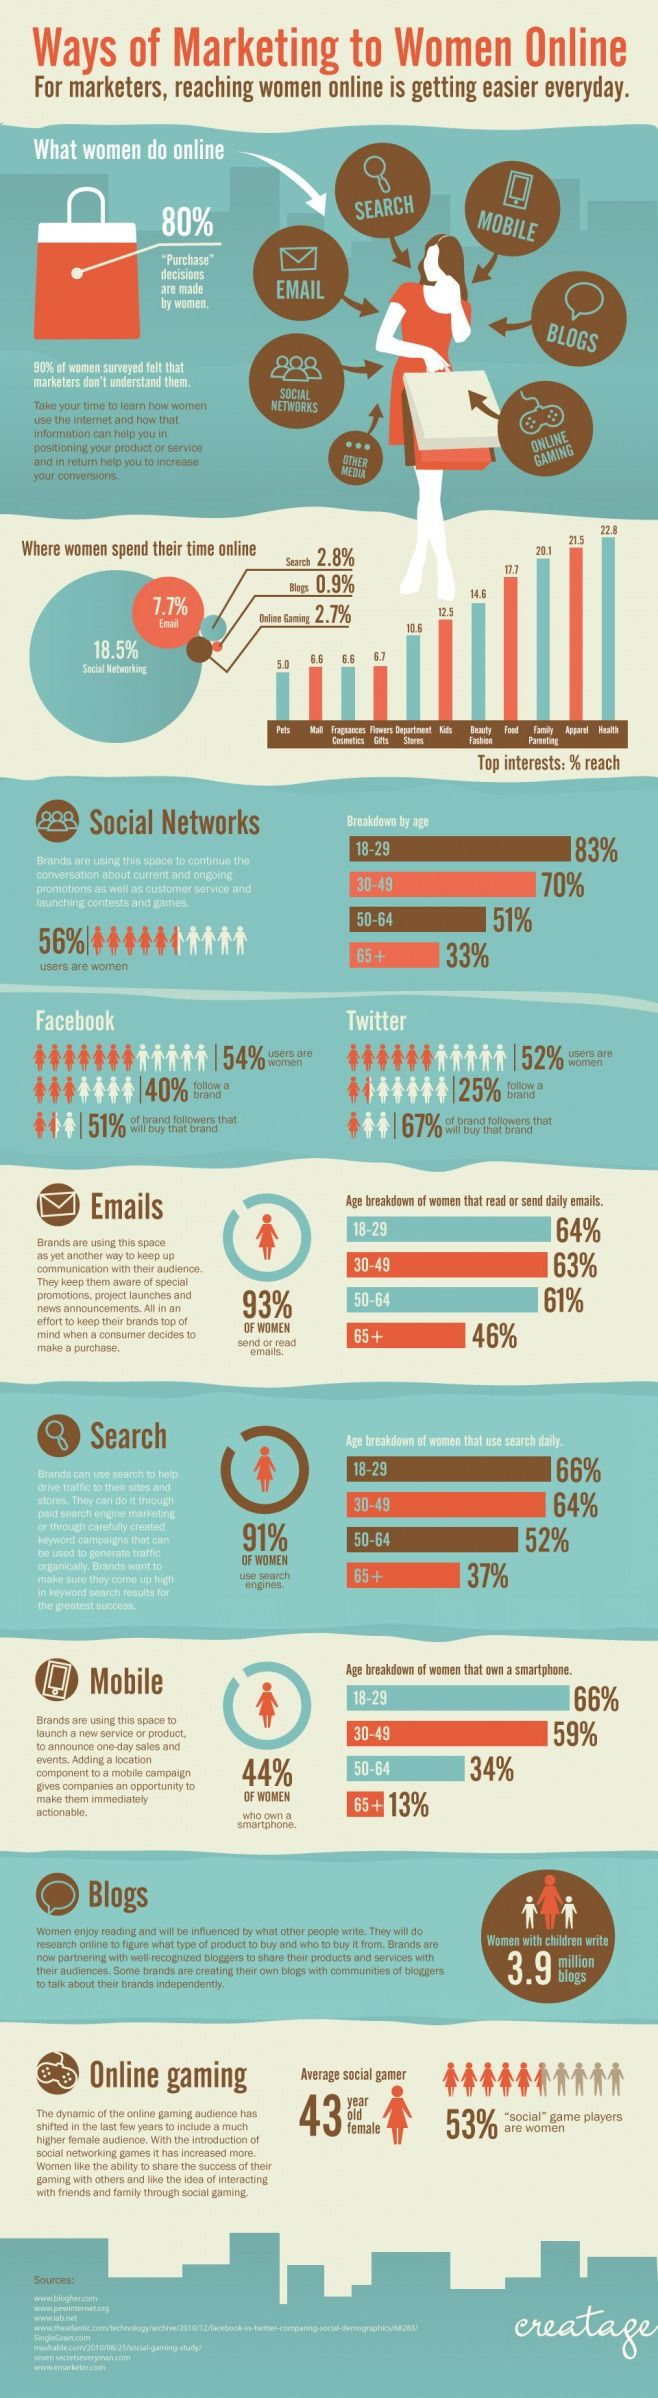 infographic about the ways for reaching women online, that shows several interesting statistics Great tips!